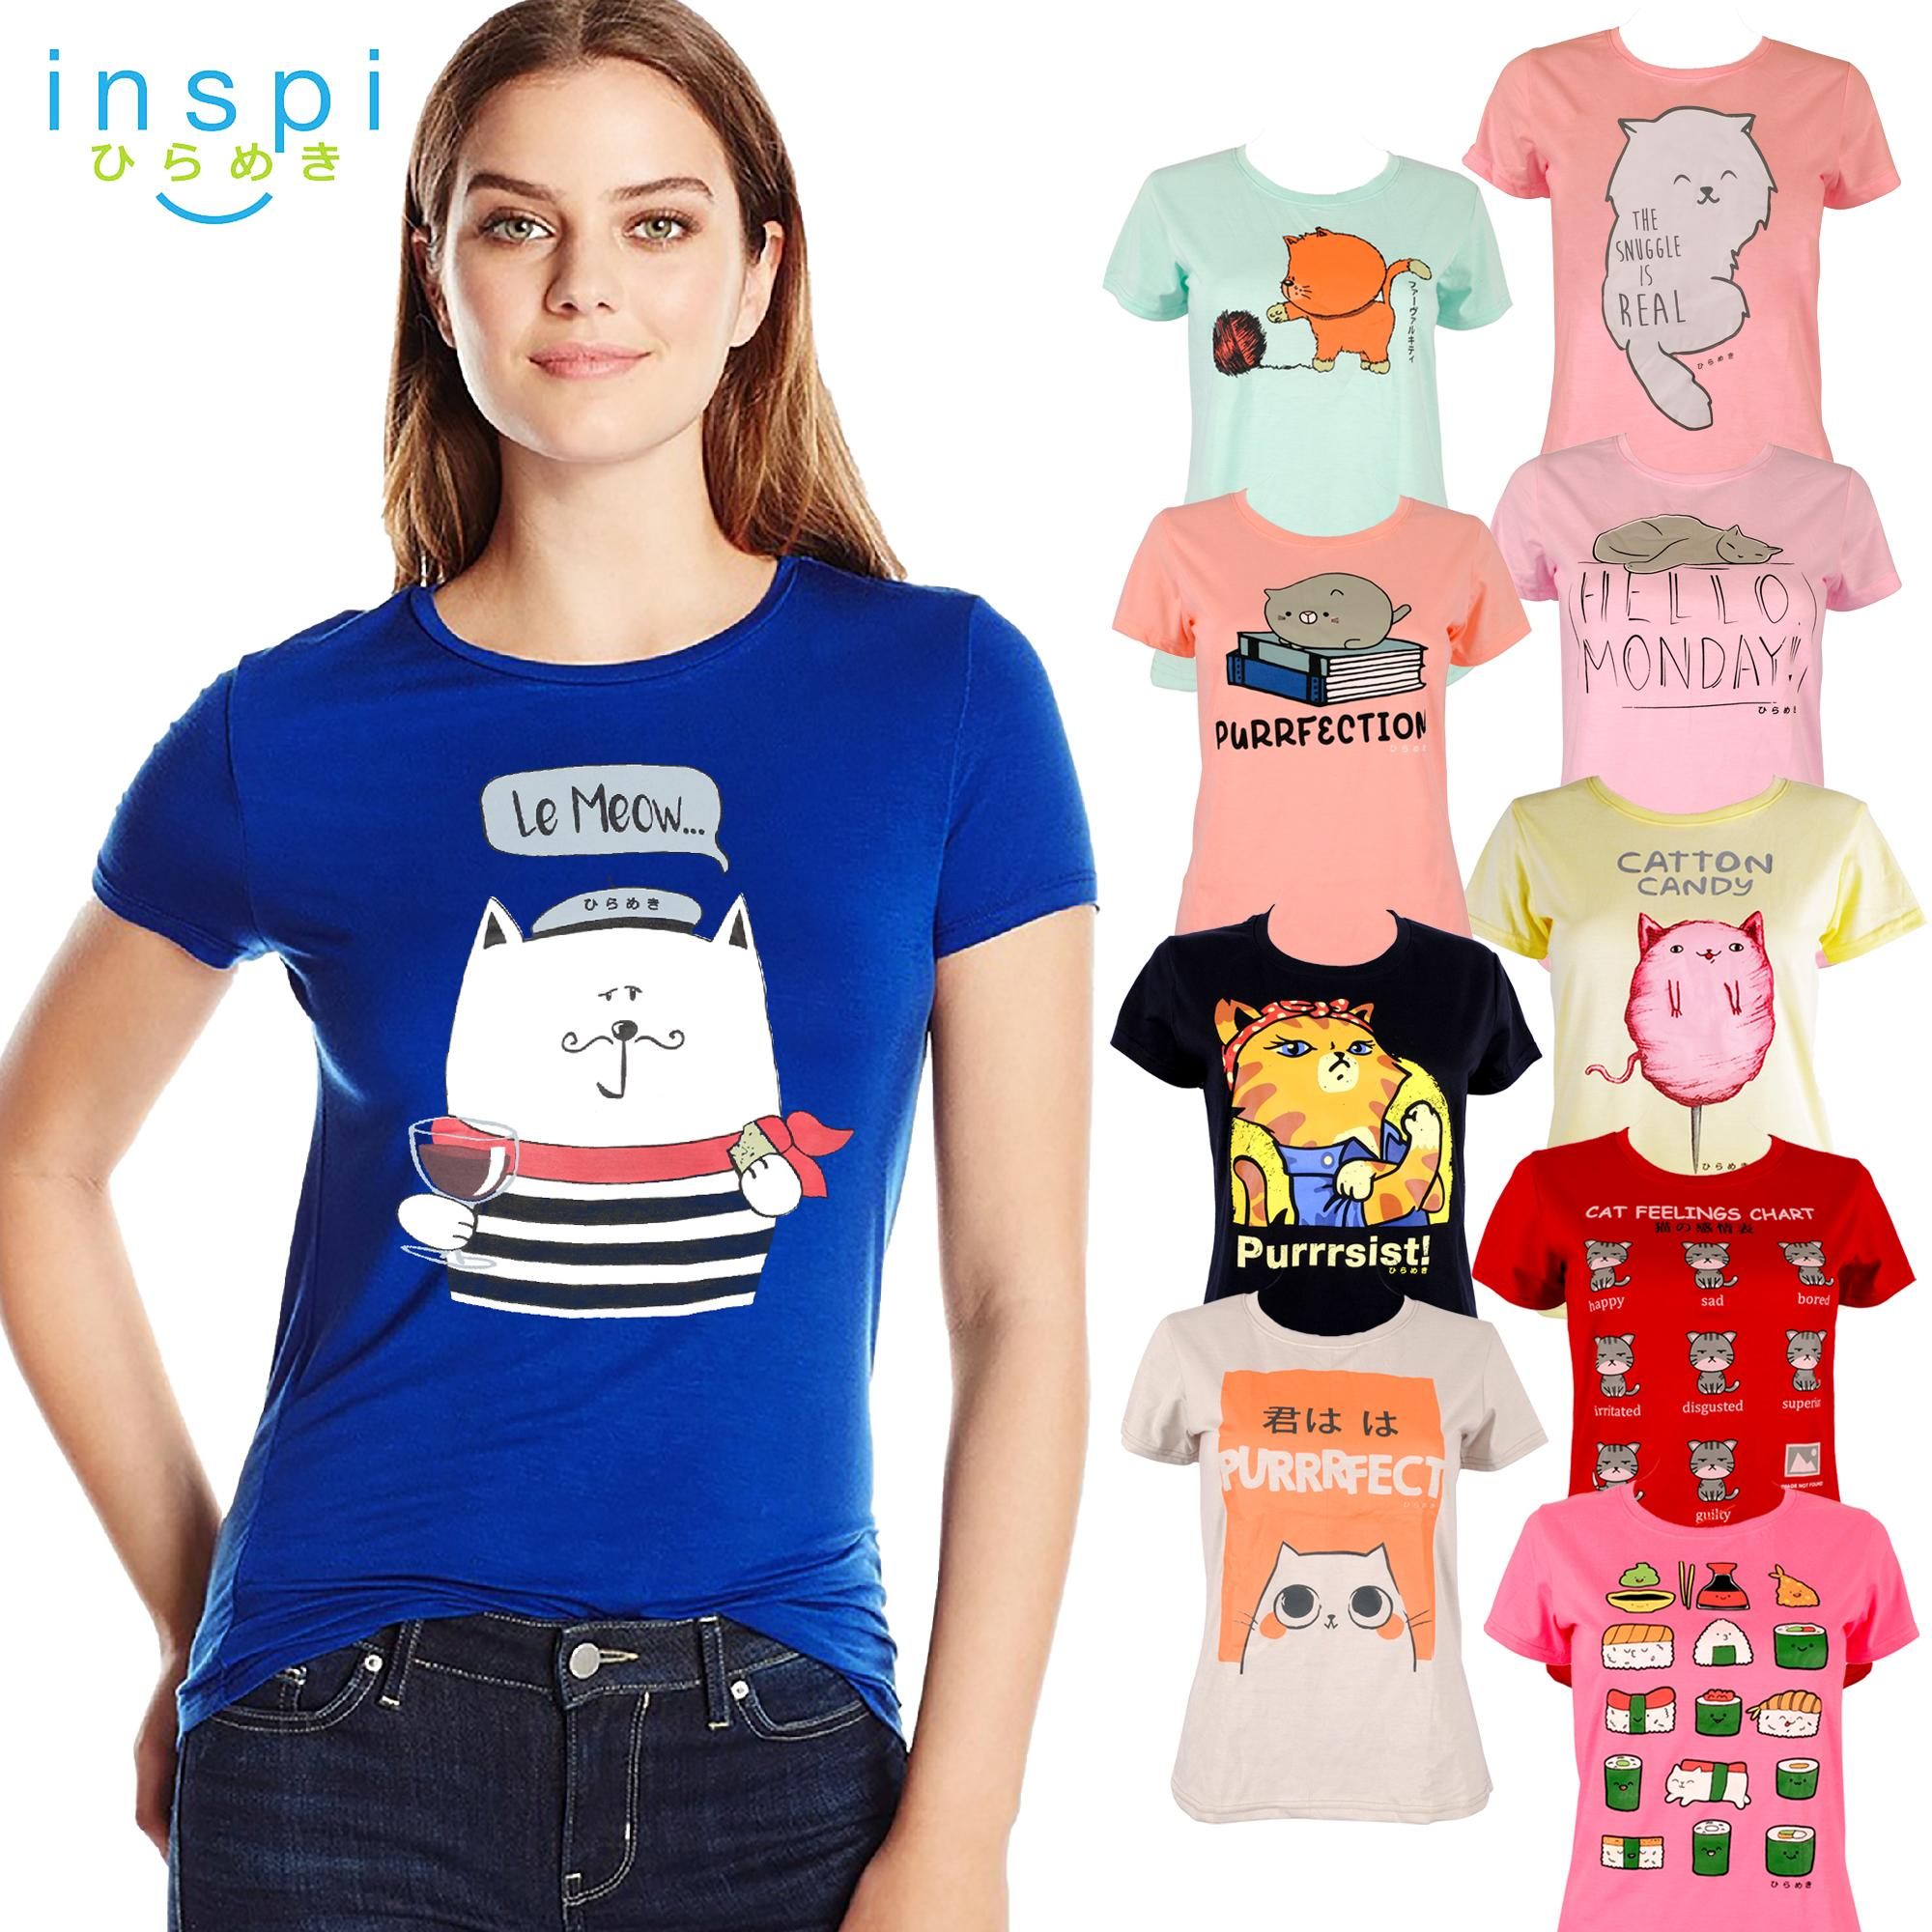 804b2b4f4 INSPI Tees Ladies Neko Collection tshirt printed graphic tee Ladies t shirt  shirts women tshirts for